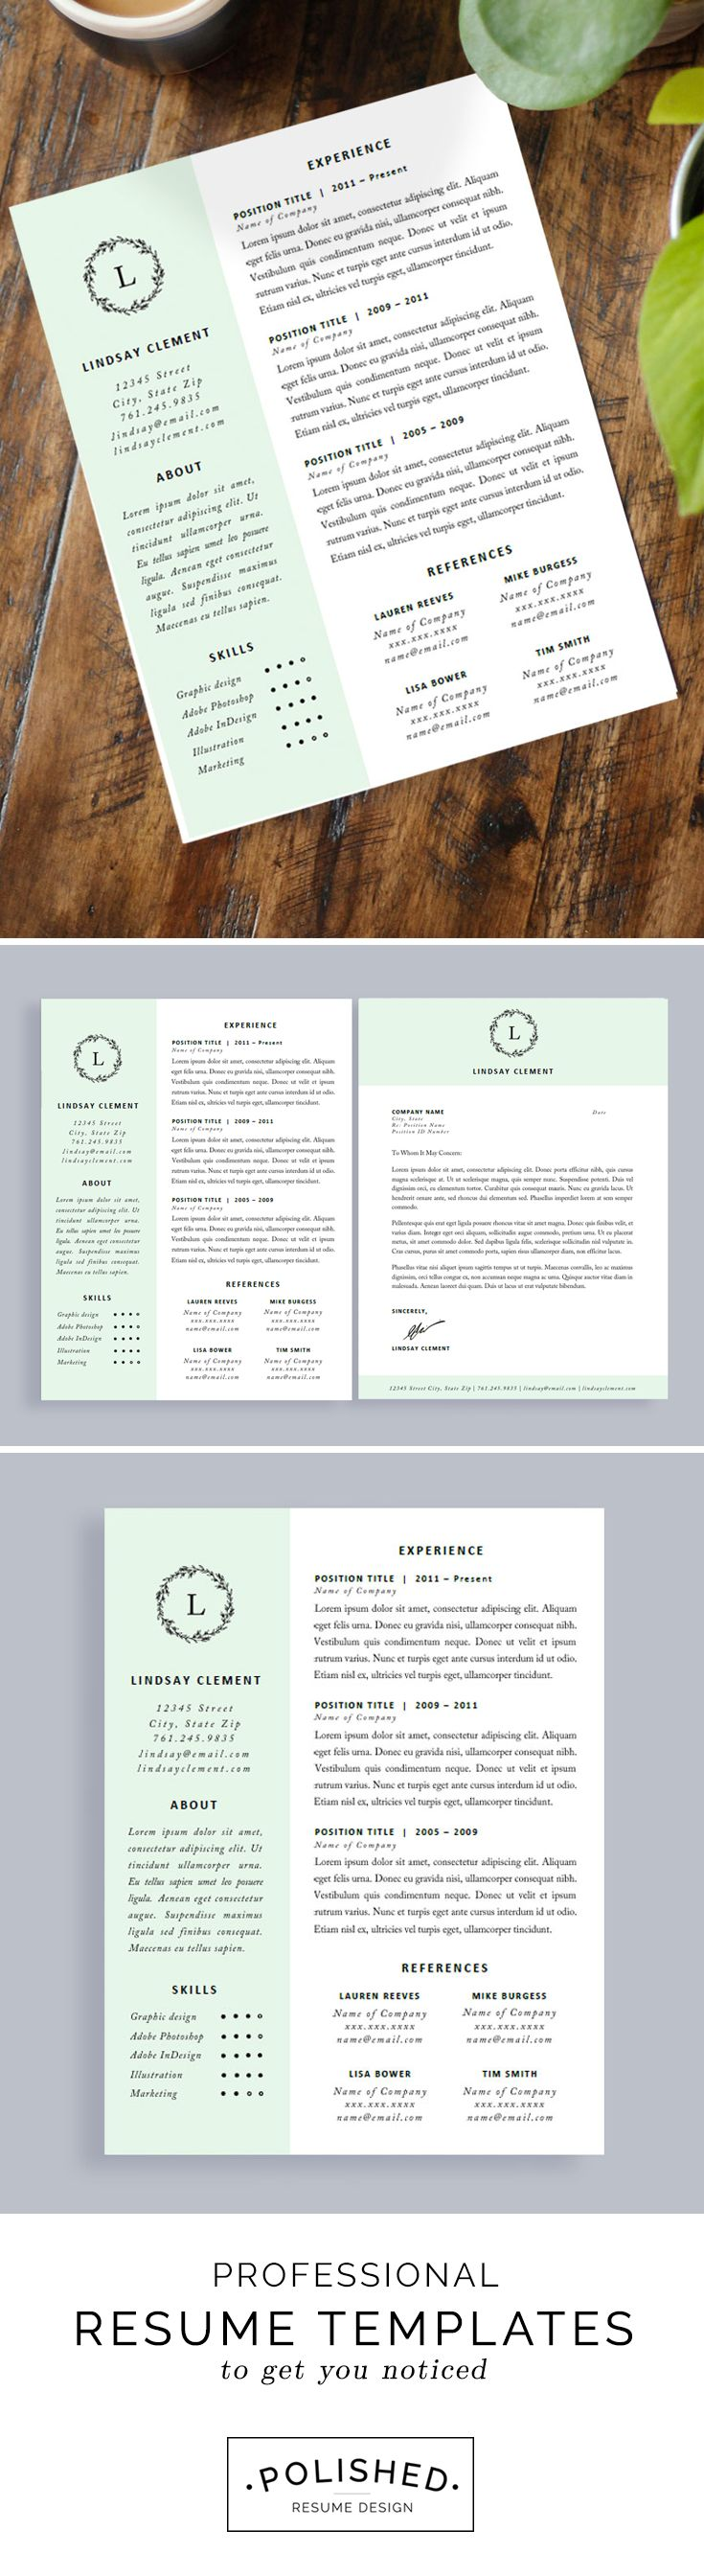 Professional resume templates for Microsoft Word Features